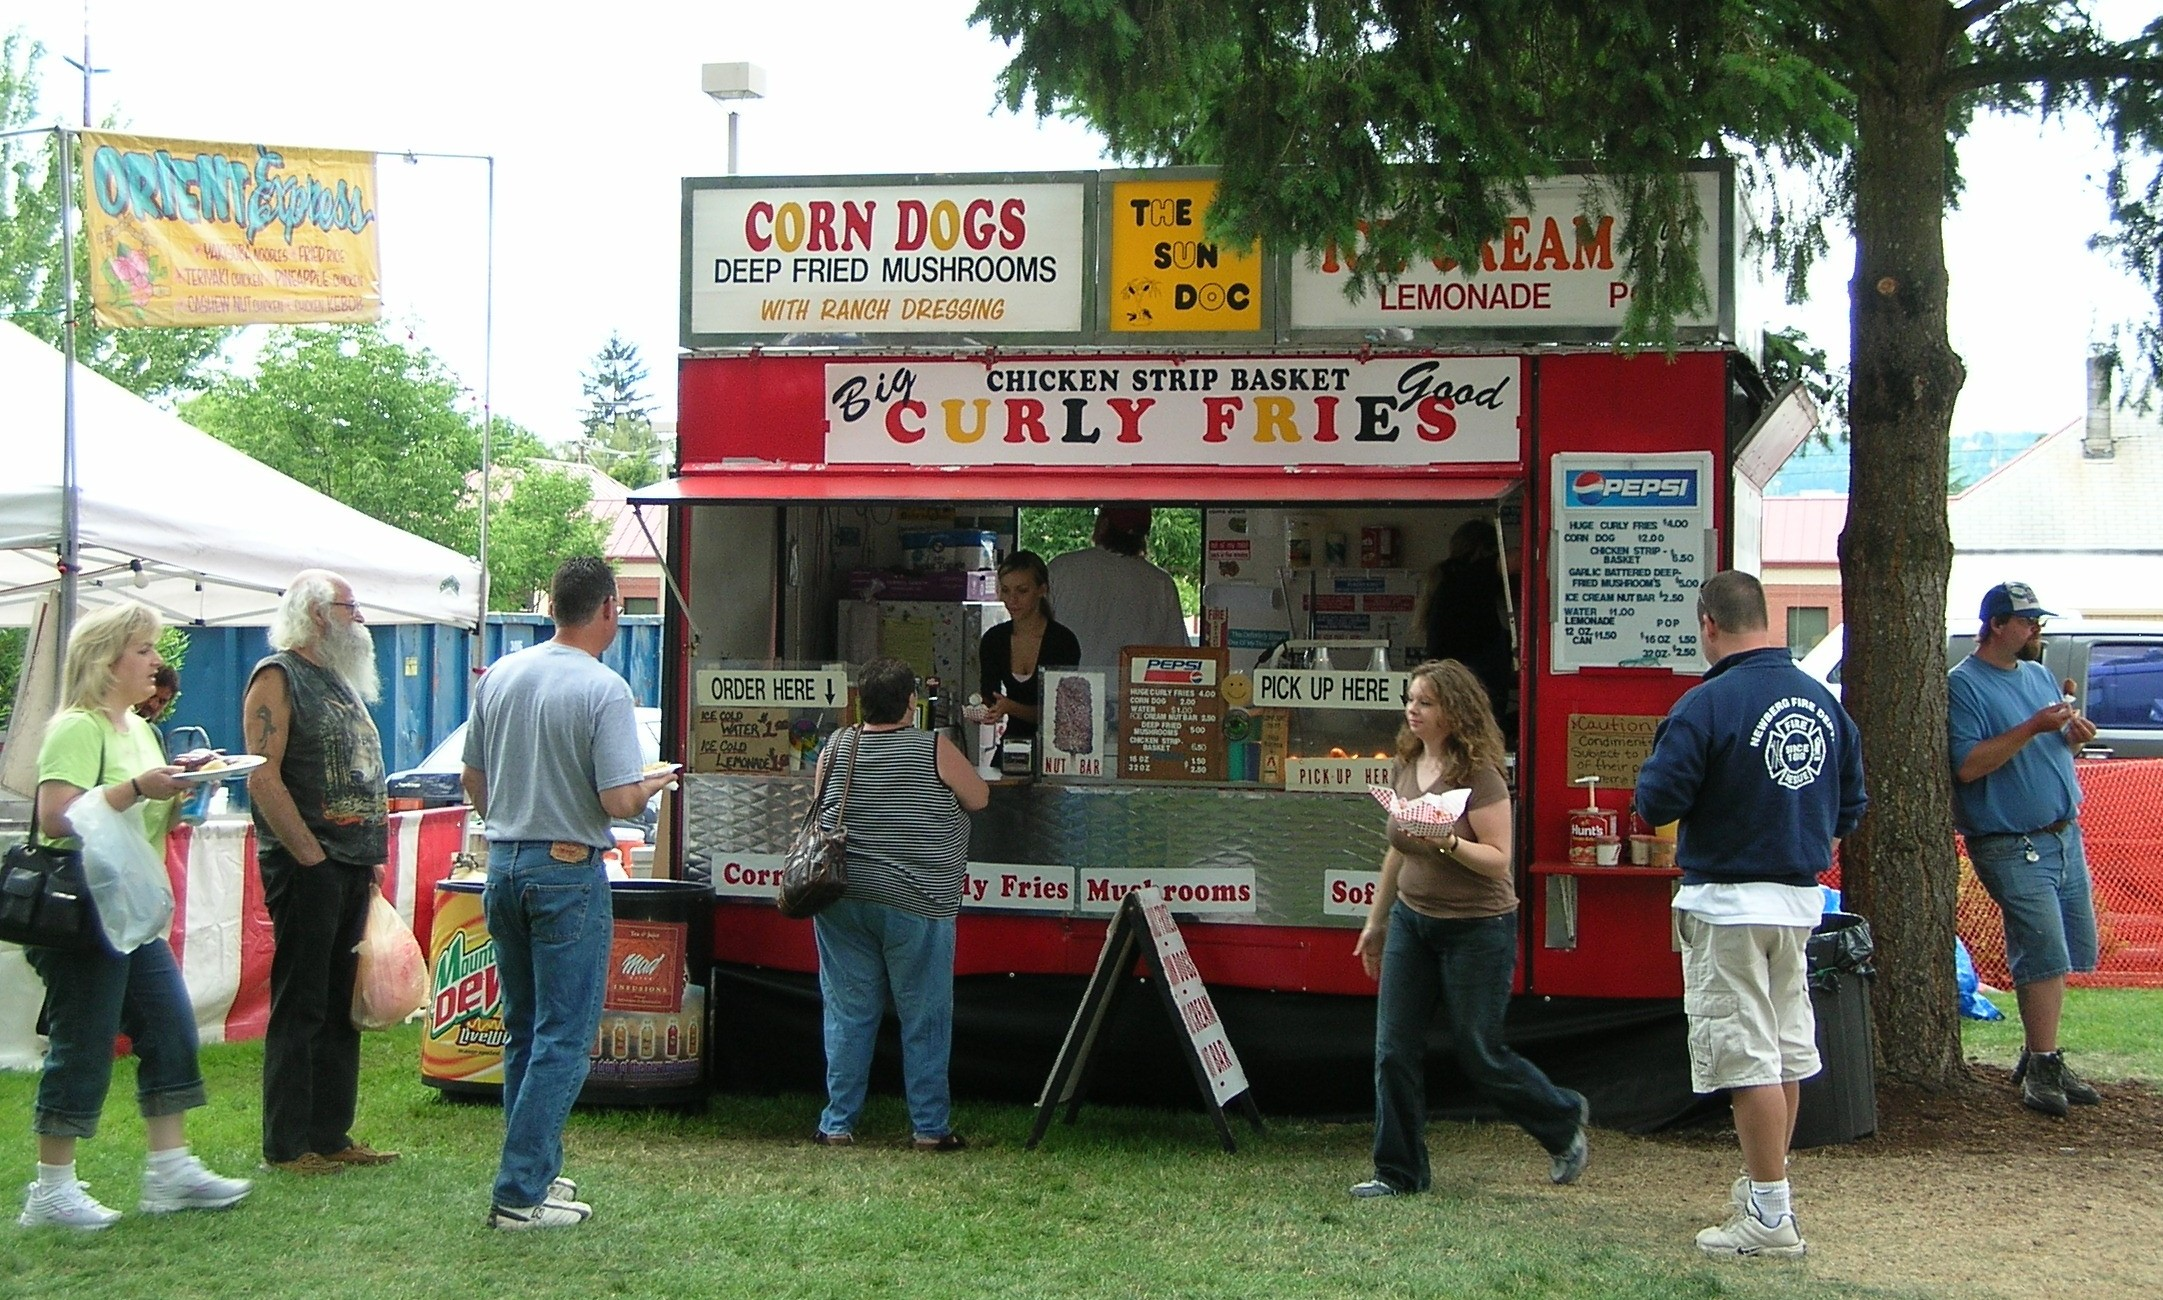 Food Booths Food Trailers Ohio Wizard Of Oz Festival - Car show vendor ideas